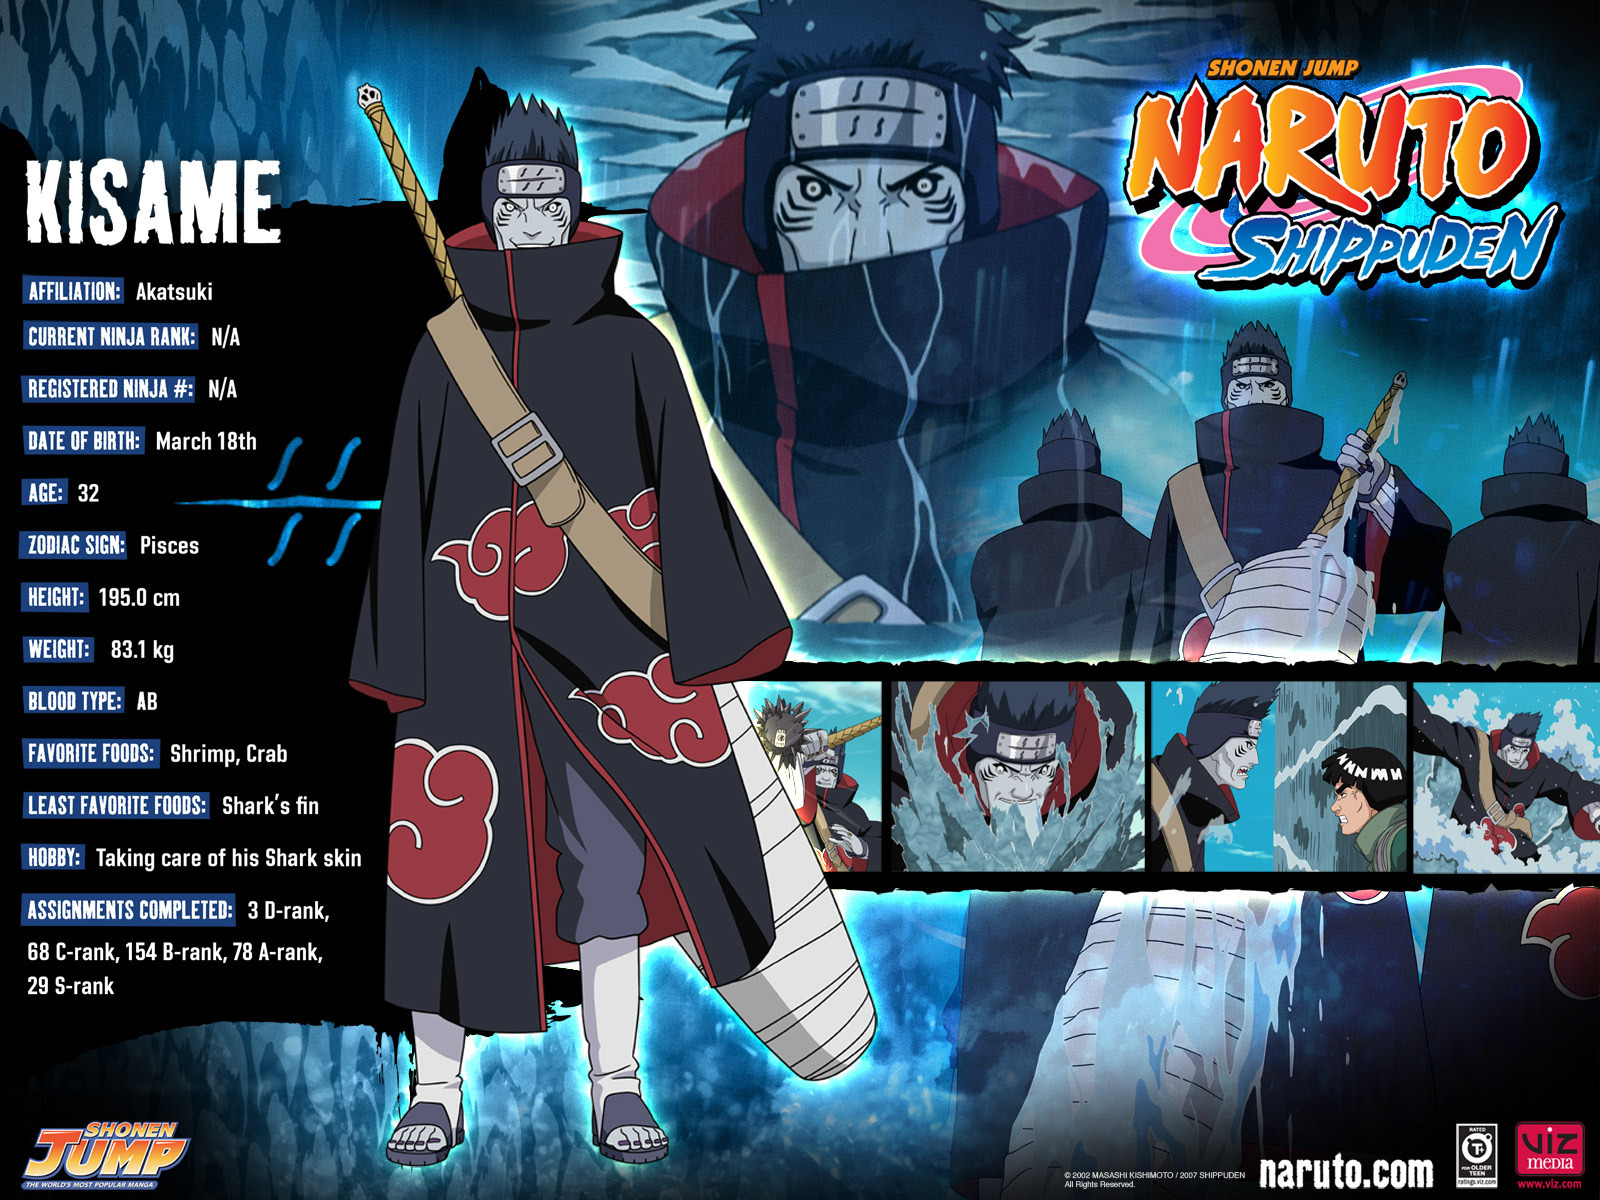 Cool Naruto Shippuden  Naruto  Pinterest  Anime, Naruto and Hd 1600x1200